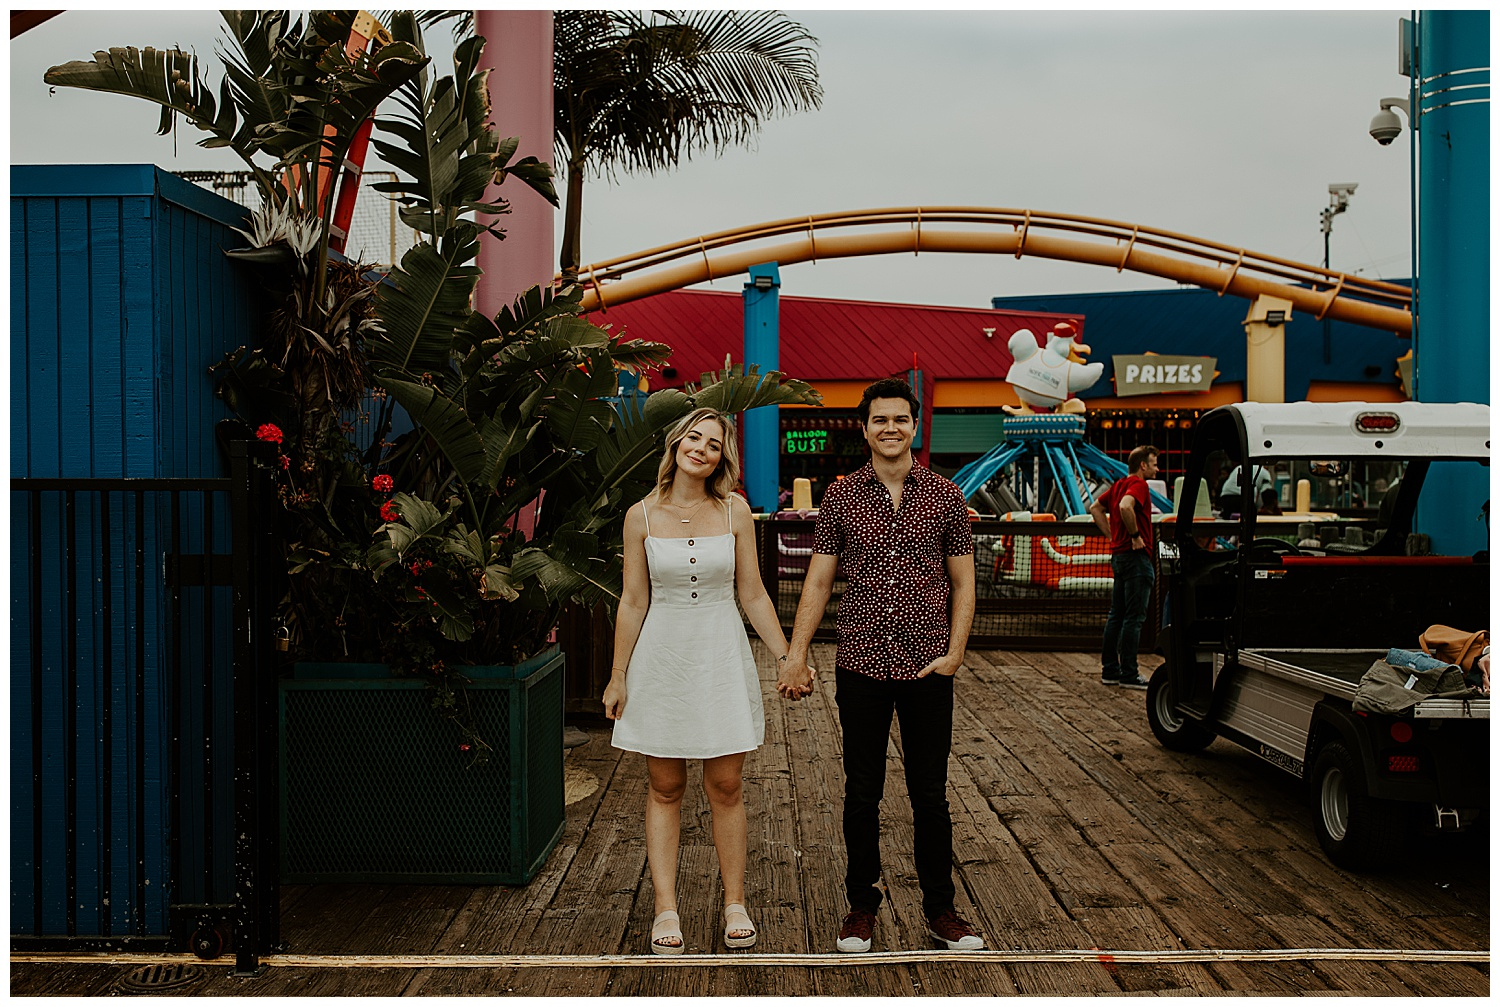 Laken-Mackenzie-Photography-Santa-Monica-Pier-Couples-Session-Kami-TJ-Malibu-Couples-Session08.jpg